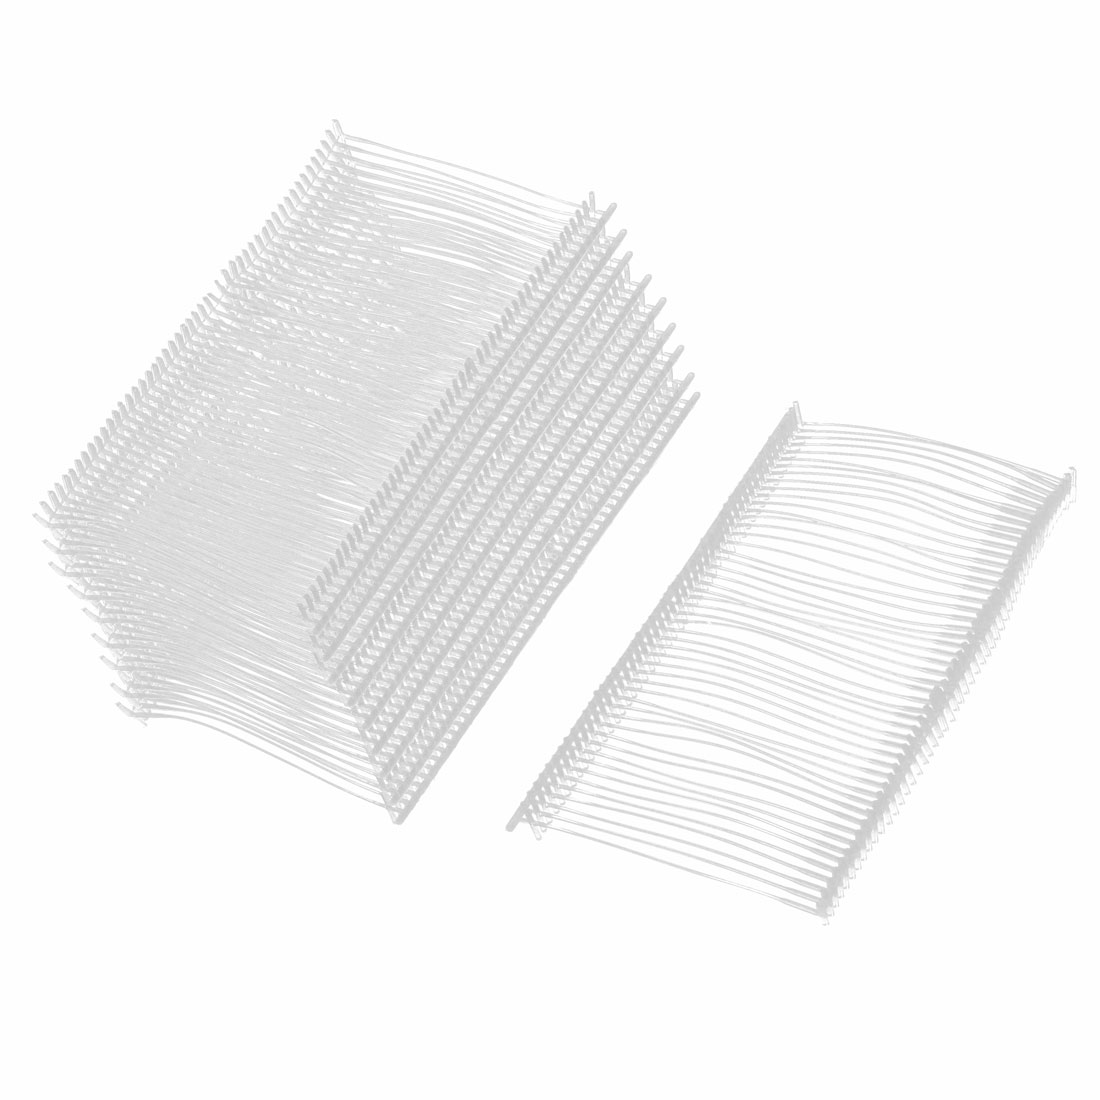 White Plastic Pillow Wash Care Label Clothes Price Tag Strip 500 Pcs